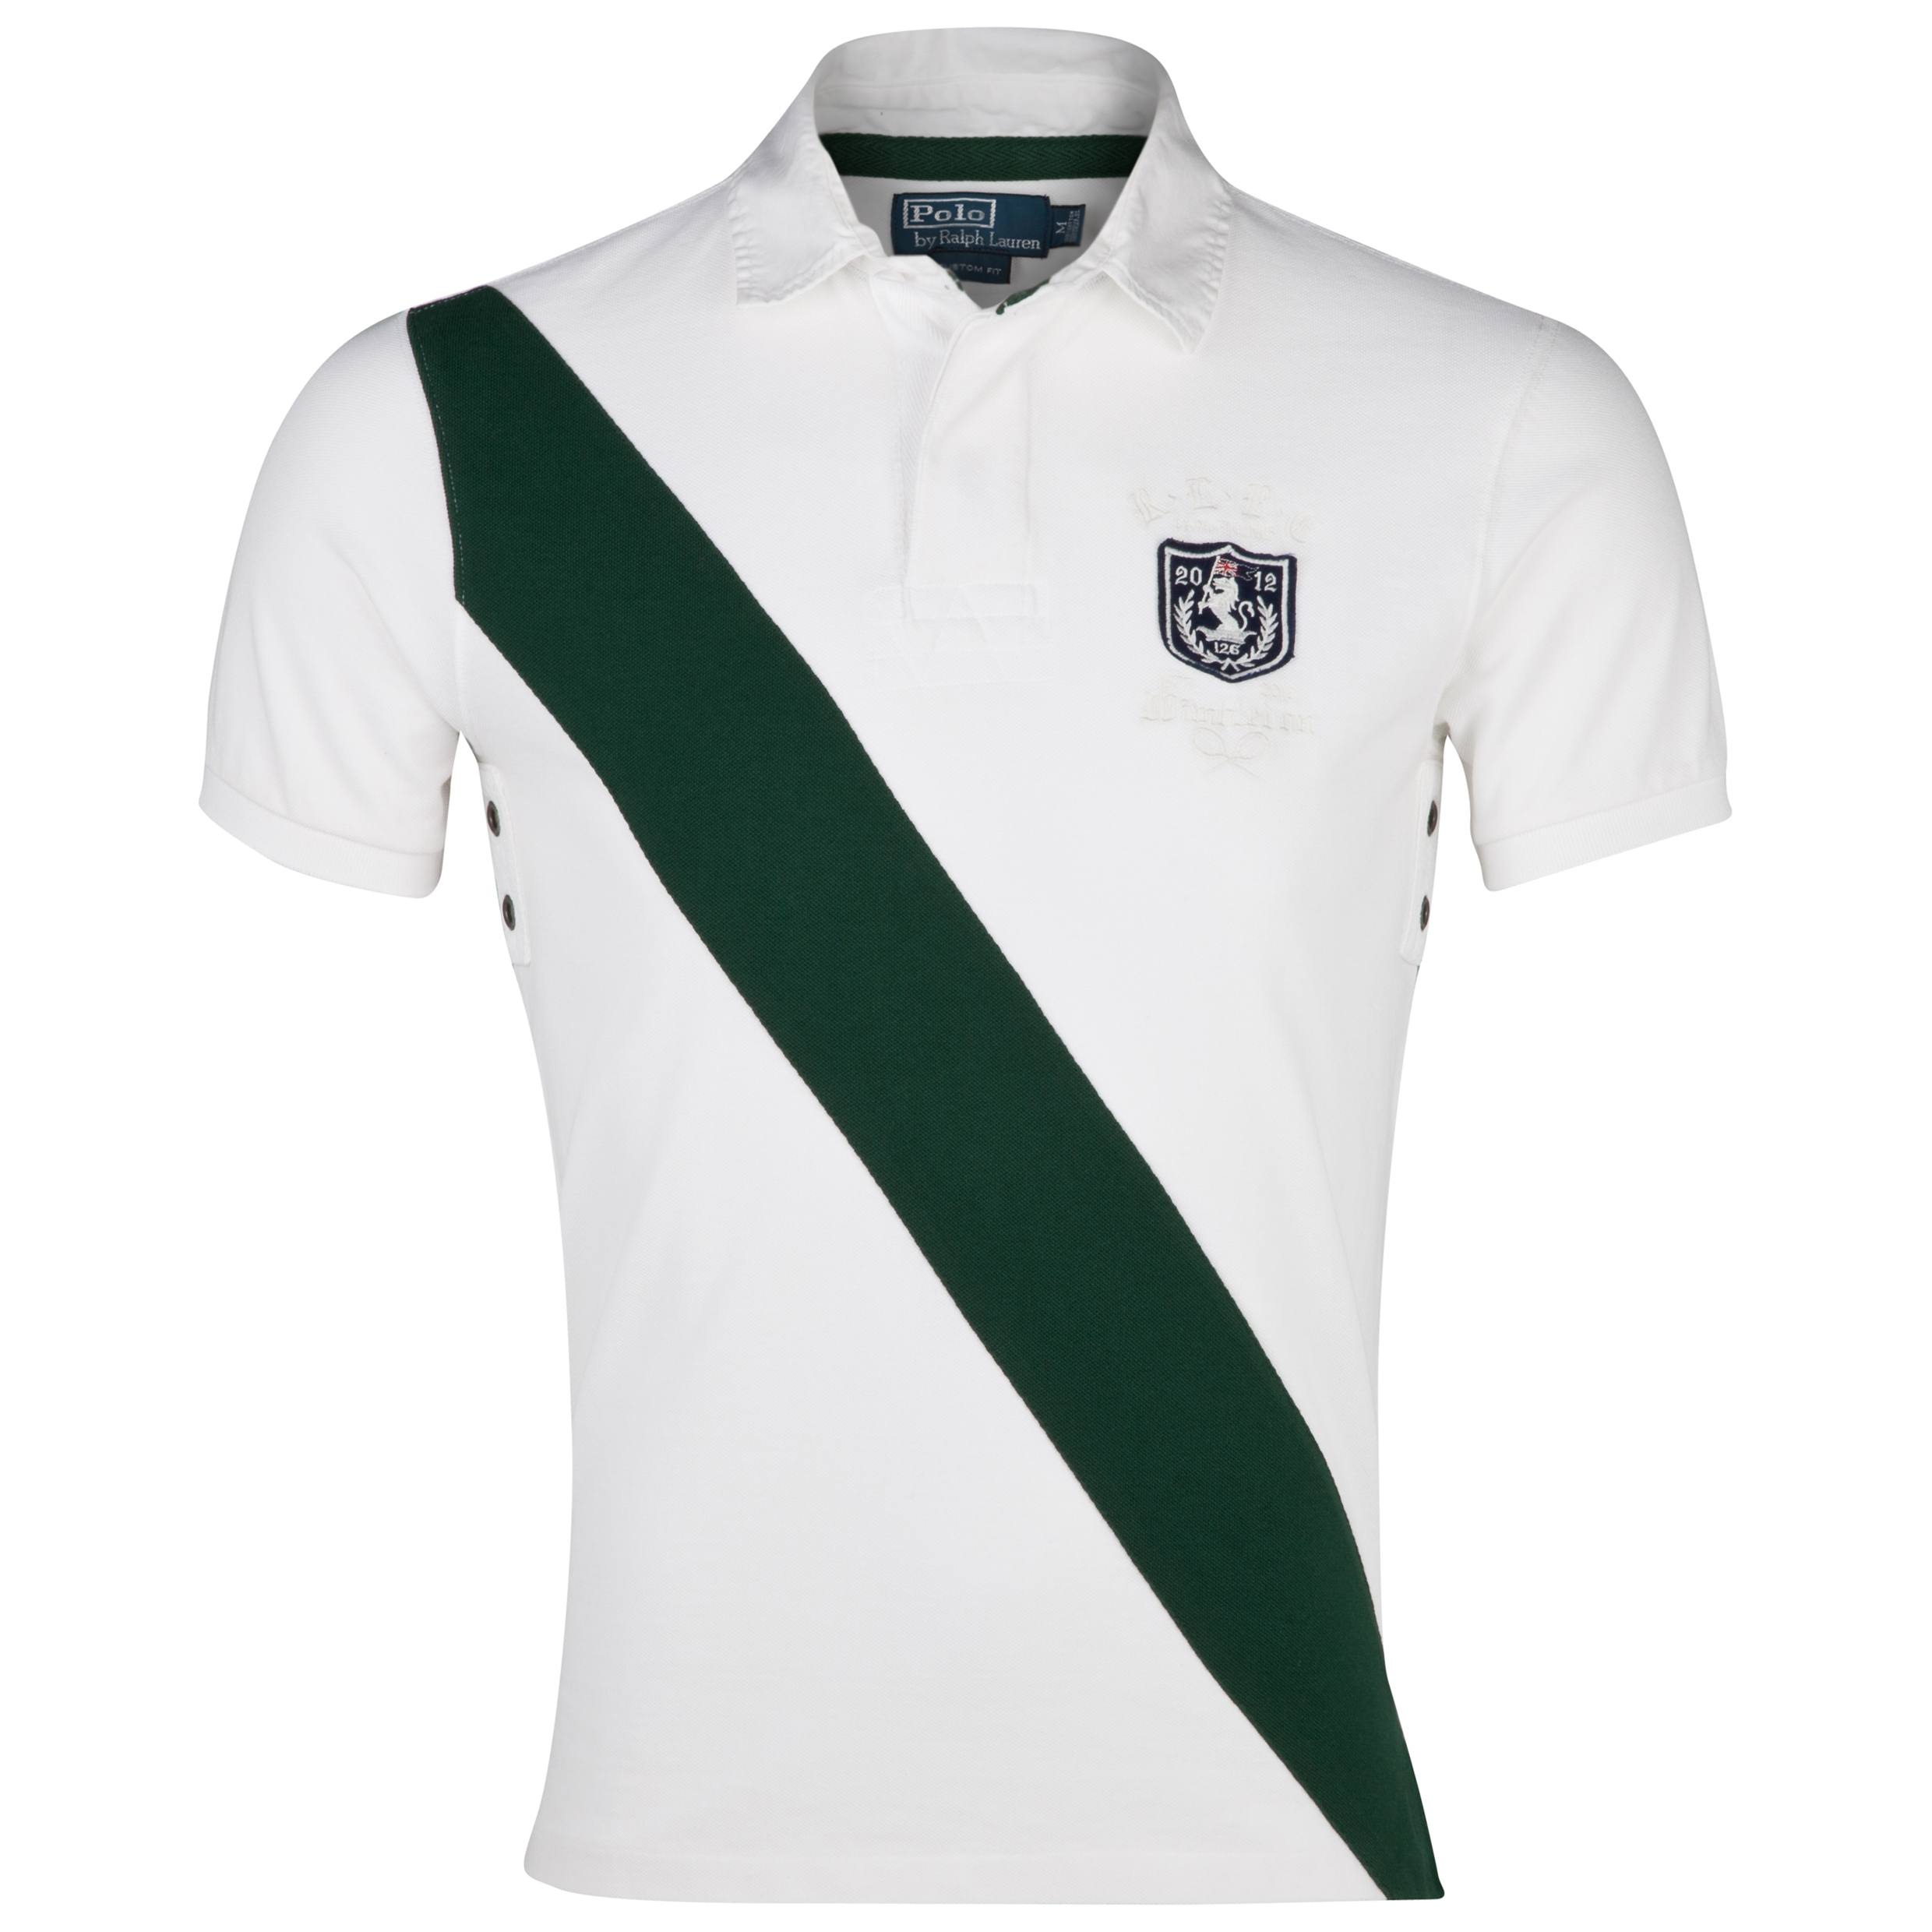 Polo Ralph Lauren Wimbledon Short Sleeve Rugby Polo - Classic Oxford White